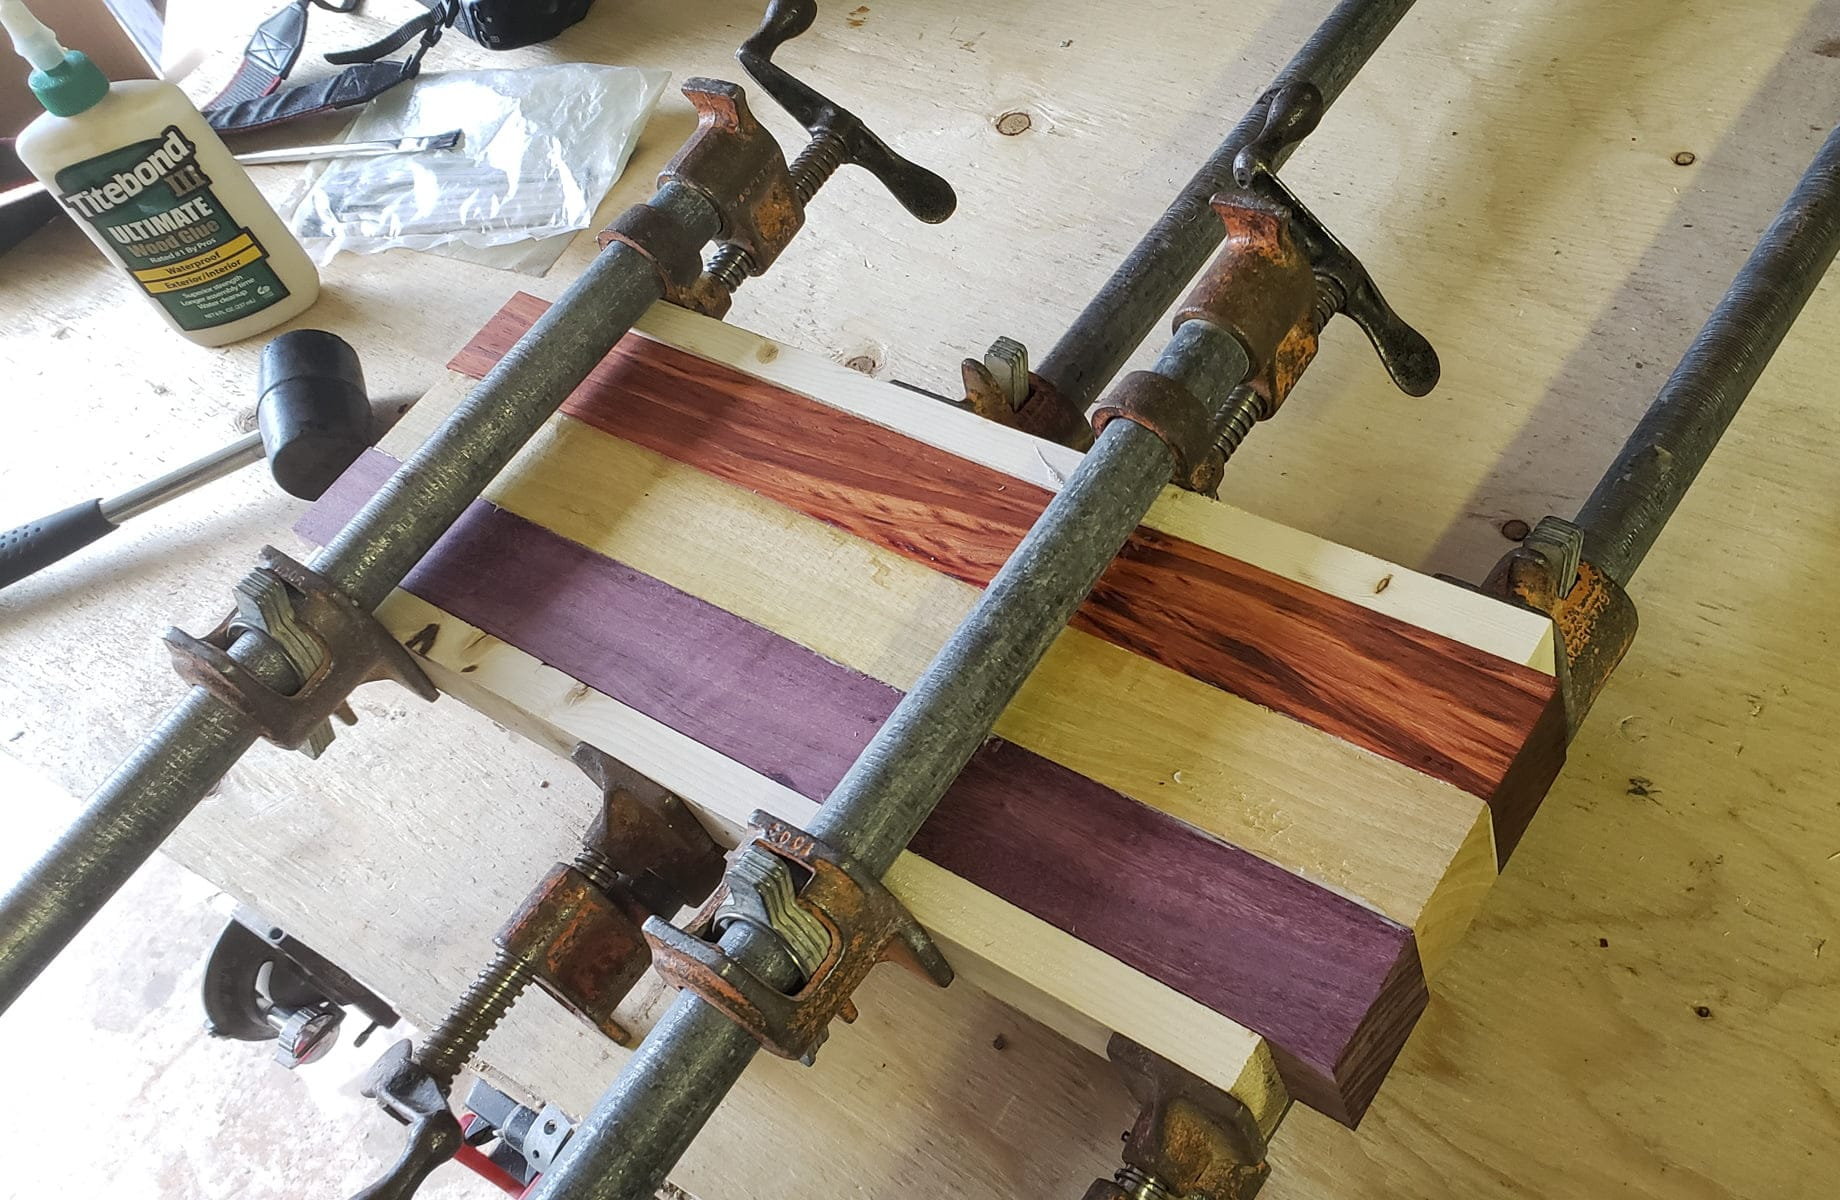 Five boards are clamped together in metal pipe clamps. The outer two boards, which are against the clamps, are cheap pine. The inner three are the high quality boards used in the cutting board.